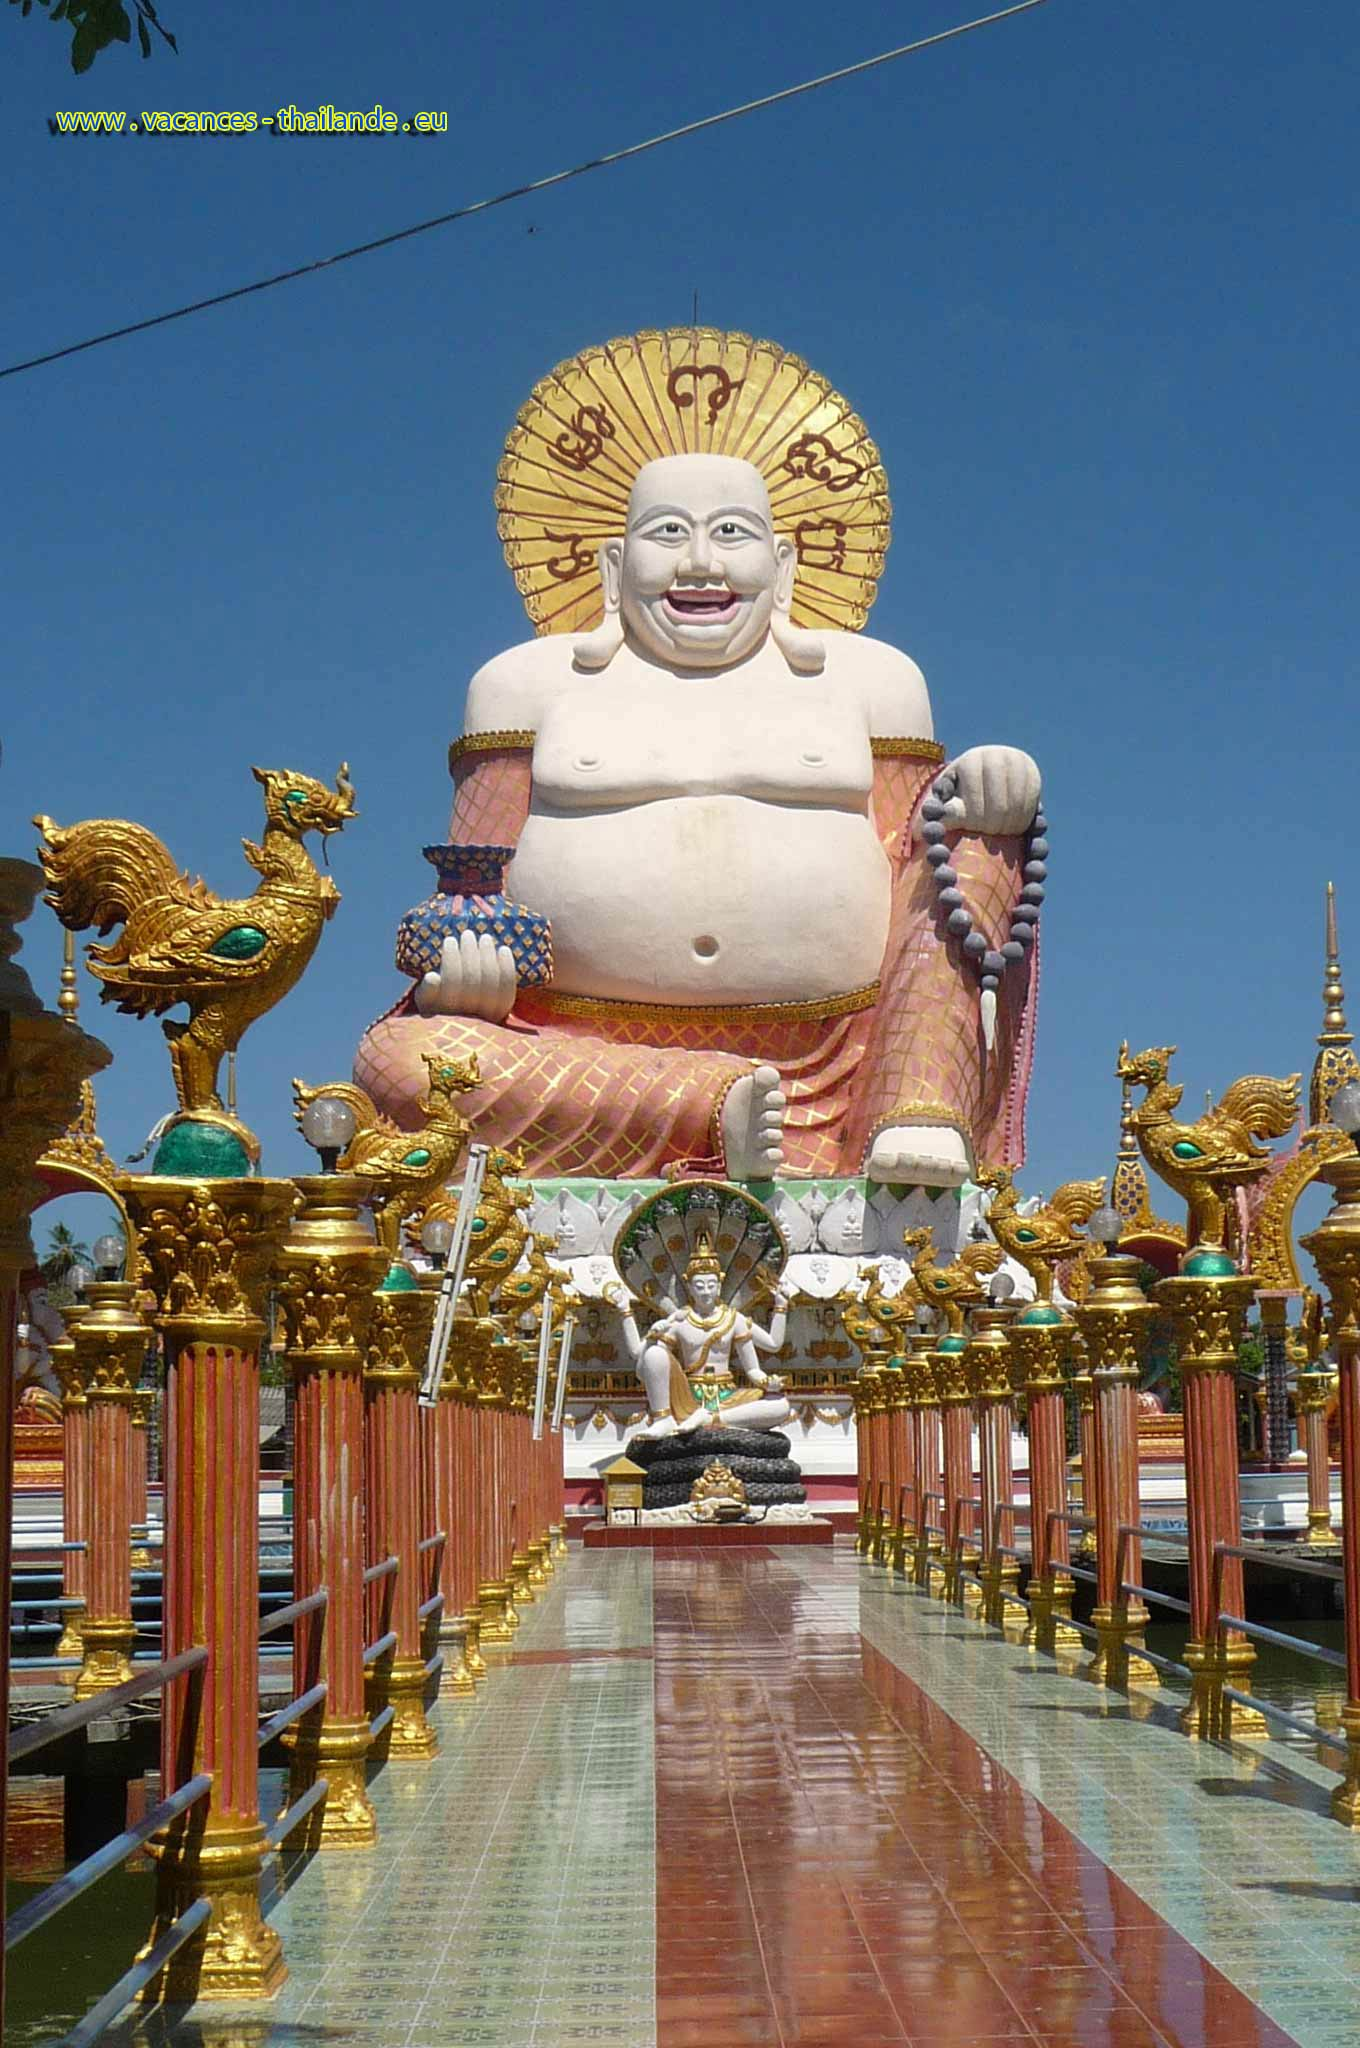 photo 17 the beautiful temples of Buddha 5 minutes of the rented house on Koh Samui in Thailand, your desires for your holiday rental in Thailand and on the island of Koh Samui